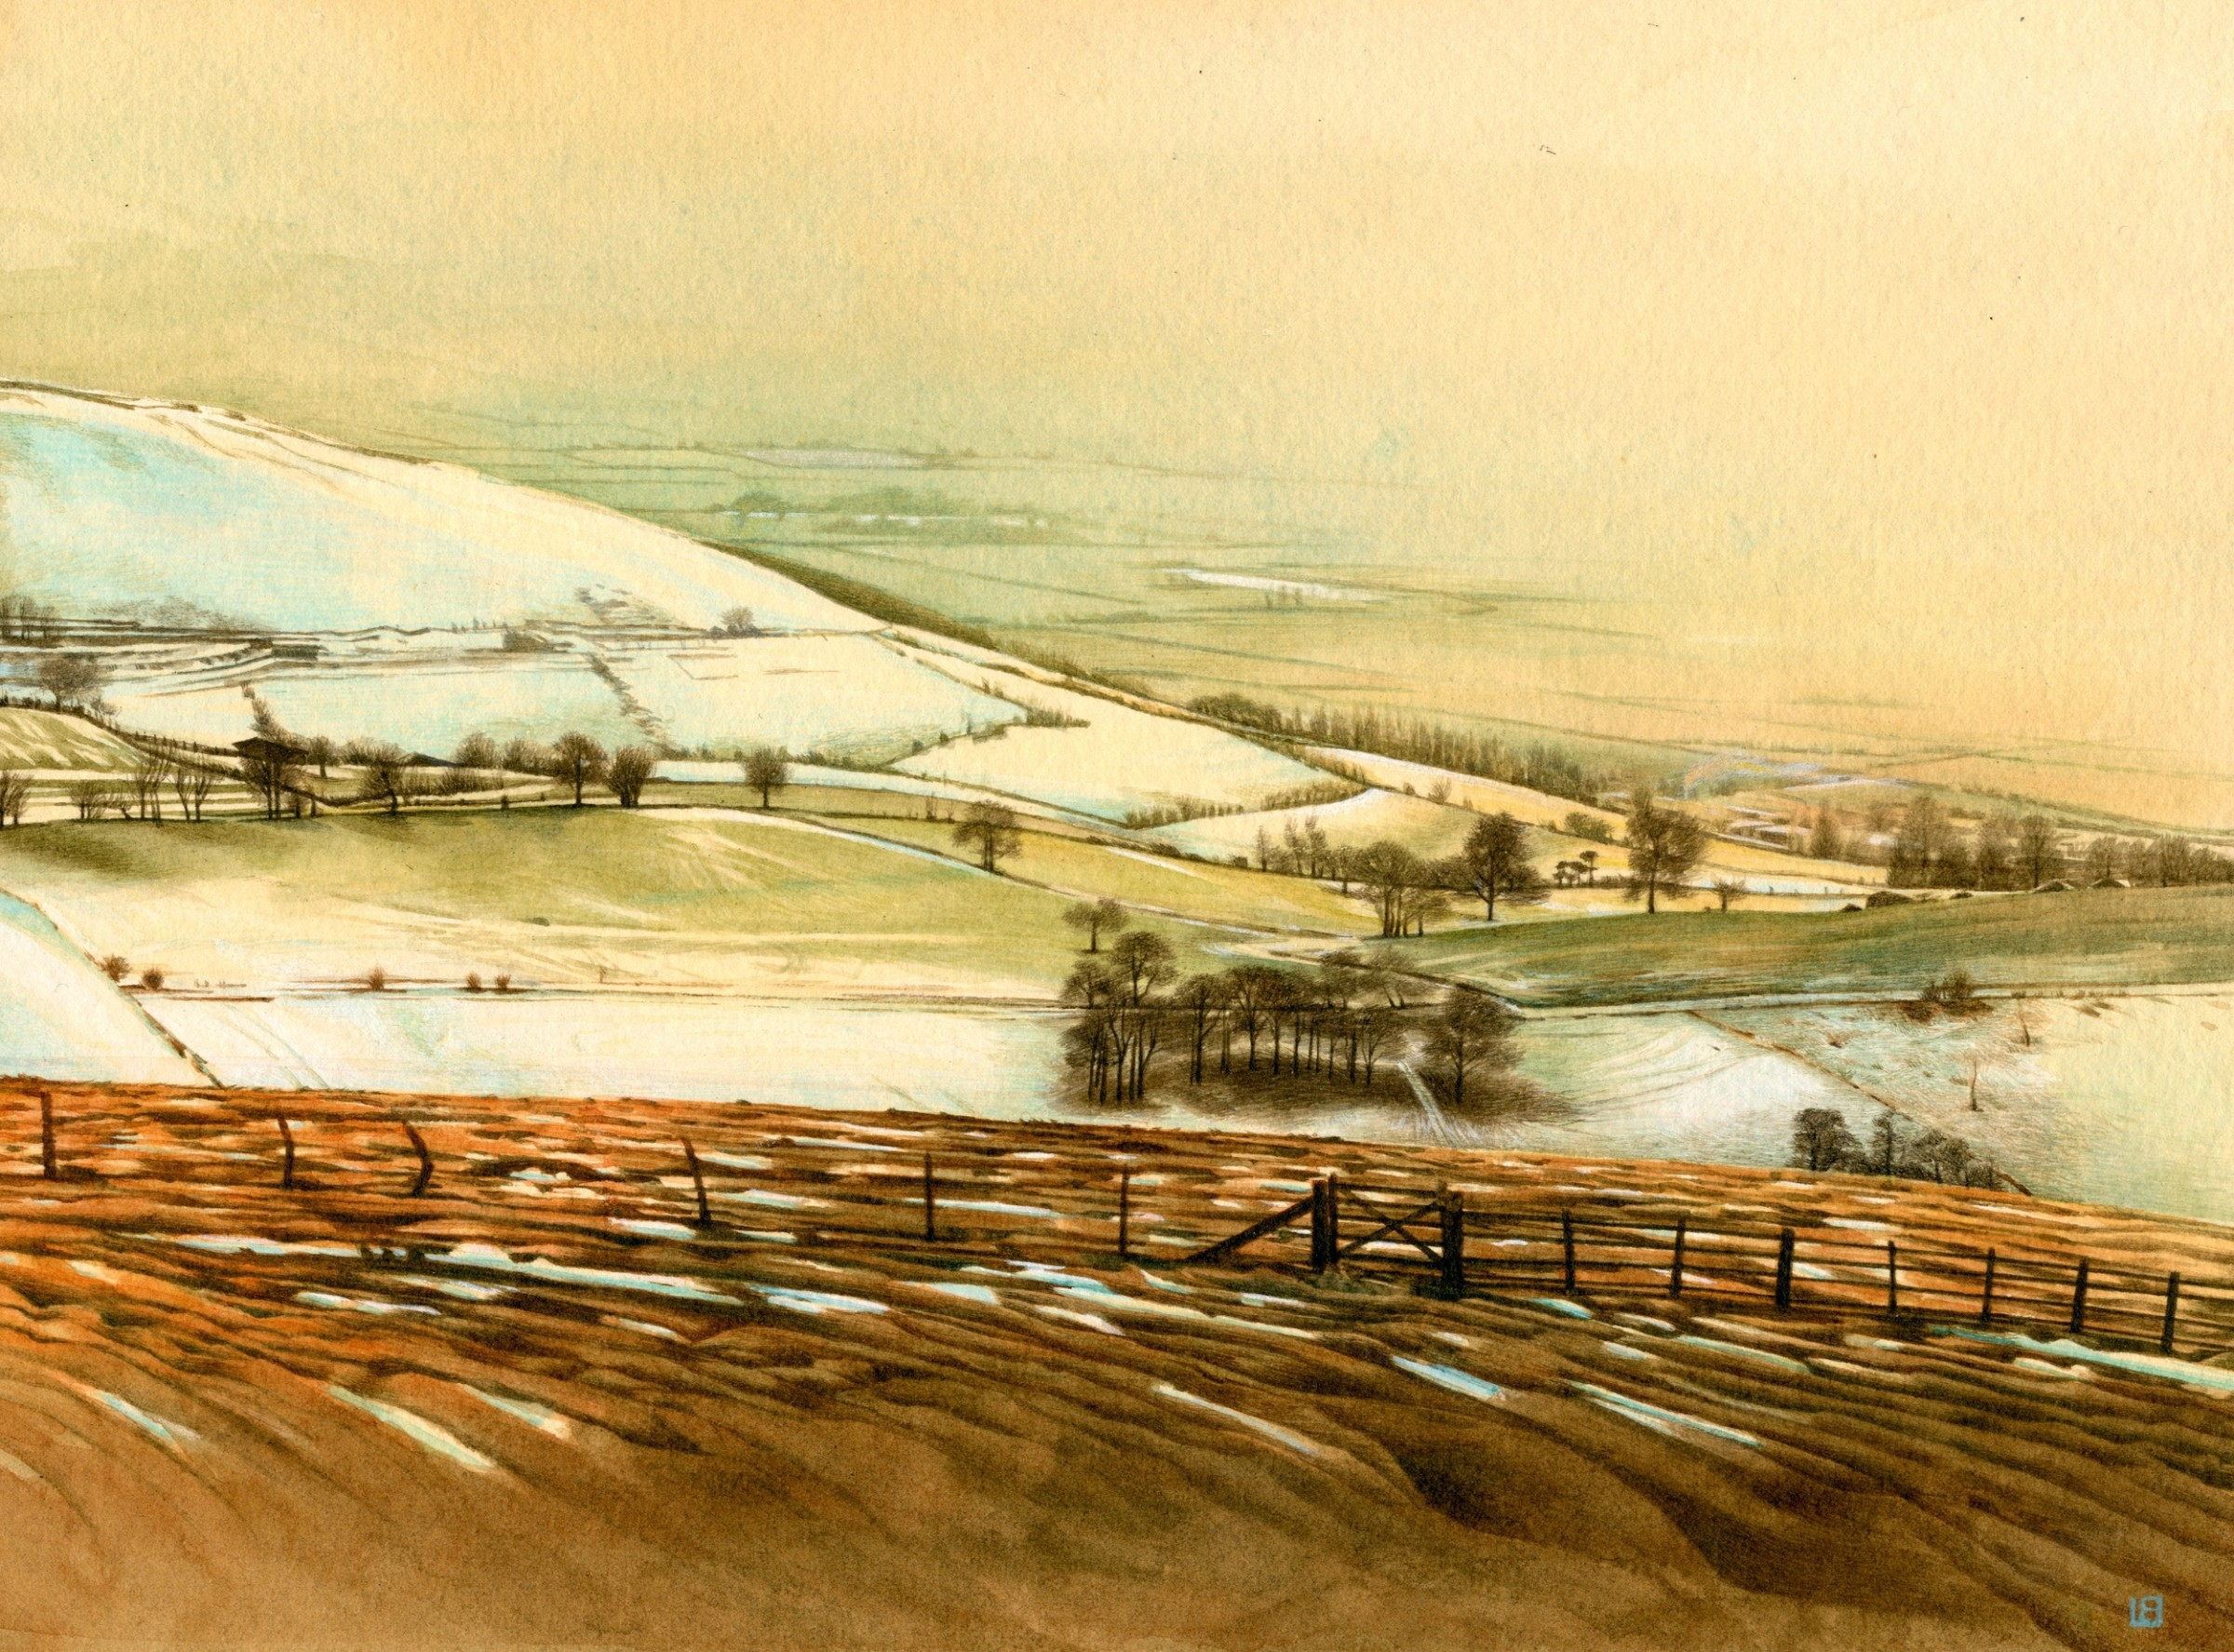 """<span class=""""link fancybox-details-link""""><a href=""""/artists/25-liz-butler/works/12697-liz-butler-view-from-moel-famau-in-the-snow/"""">View Detail Page</a></span><div class=""""artist""""><span class=""""artist""""><strong>Liz Butler</strong></span></div><div class=""""title""""><em>View from Moel Famau in the Snow</em></div><div class=""""medium"""">watercolour</div><div class=""""dimensions"""">Artwork: 22 x 16.5cm</div><div class=""""price"""">£975.00</div>"""